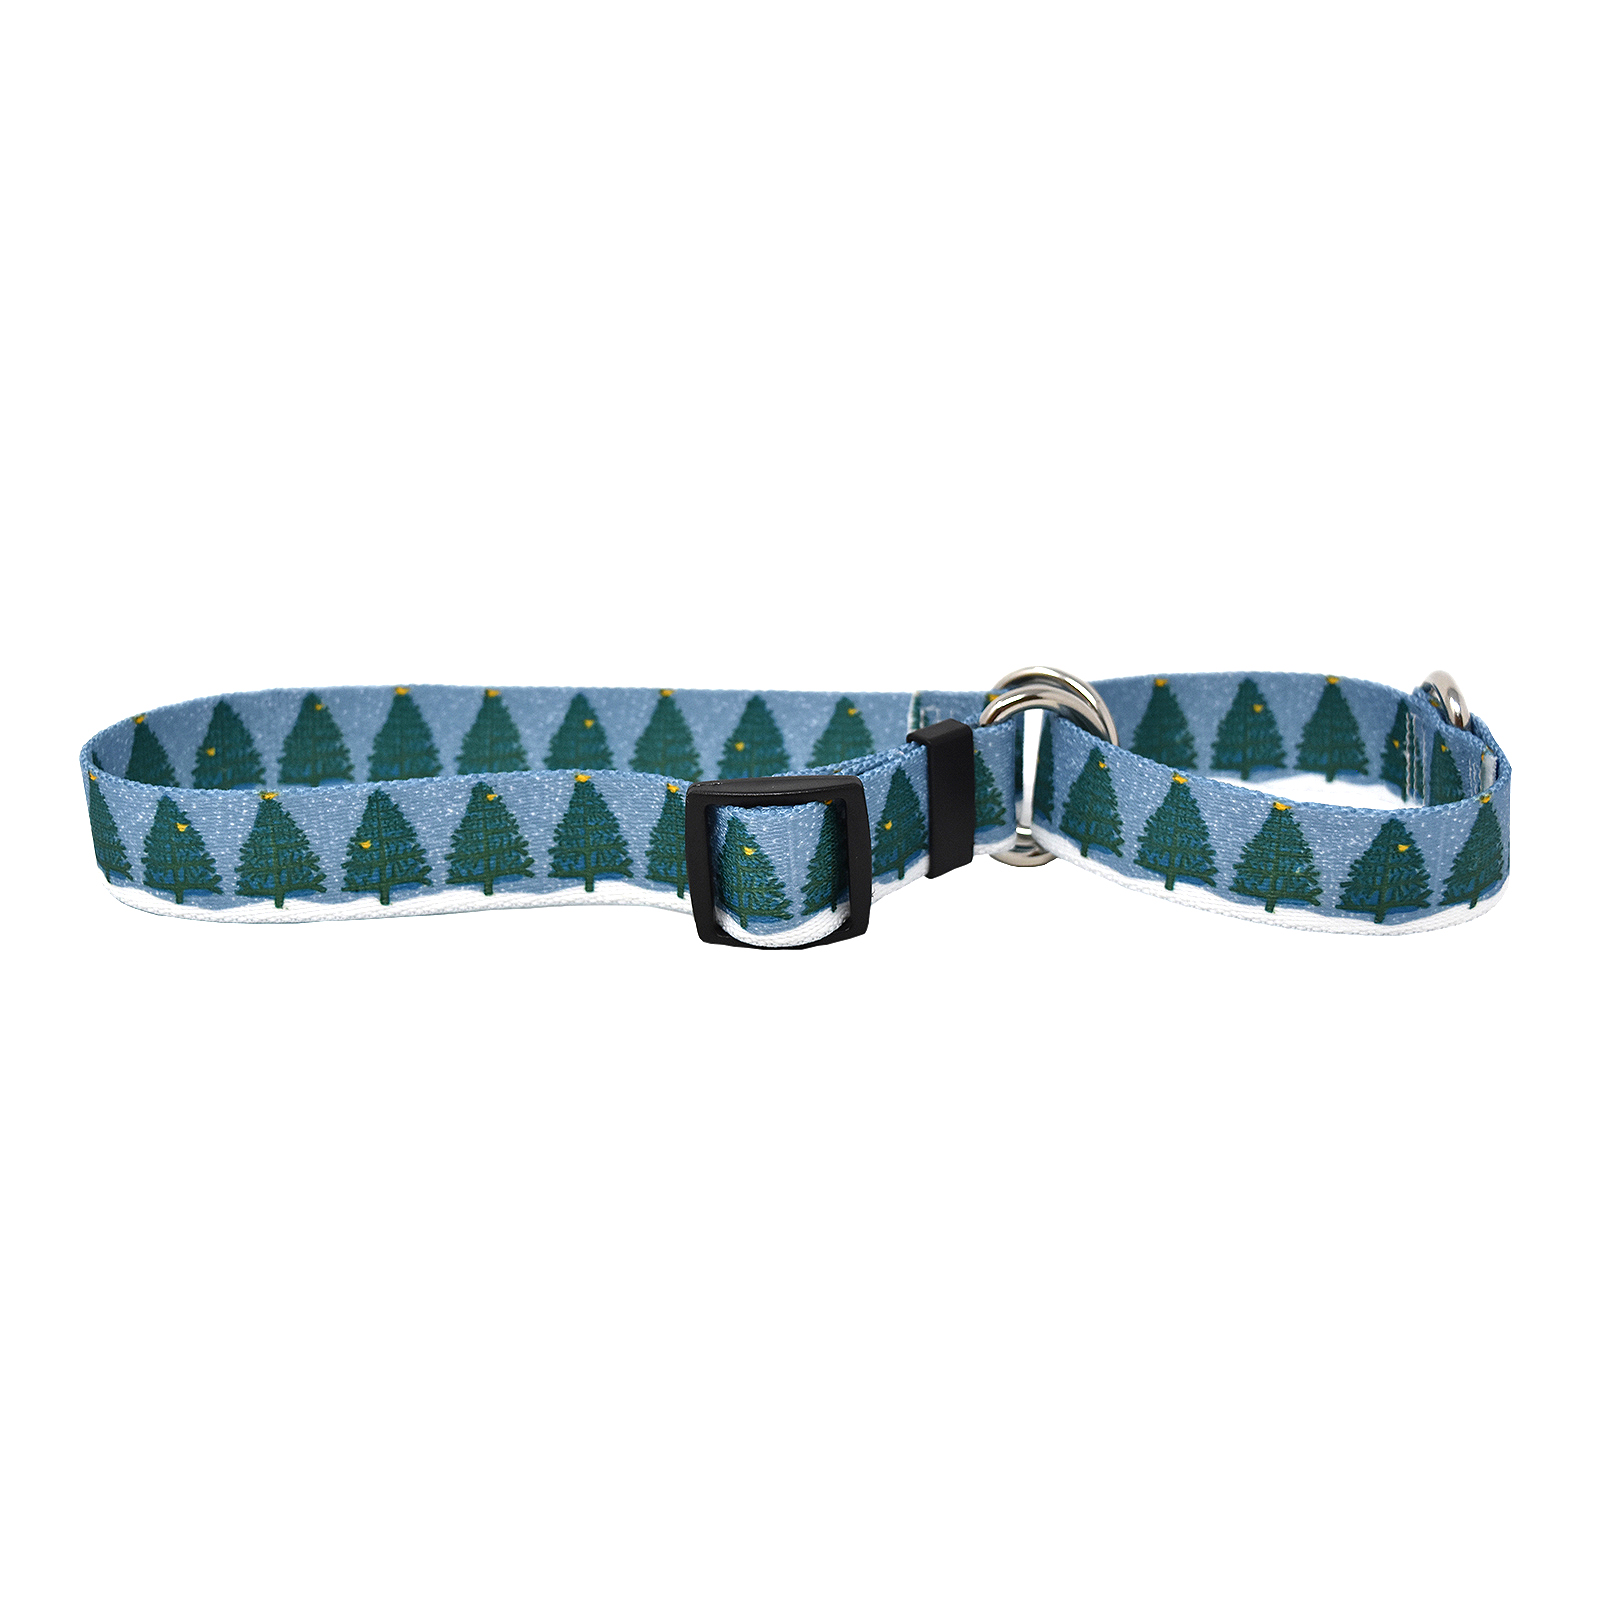 O Tanmenbaum Blue Martingale Collar